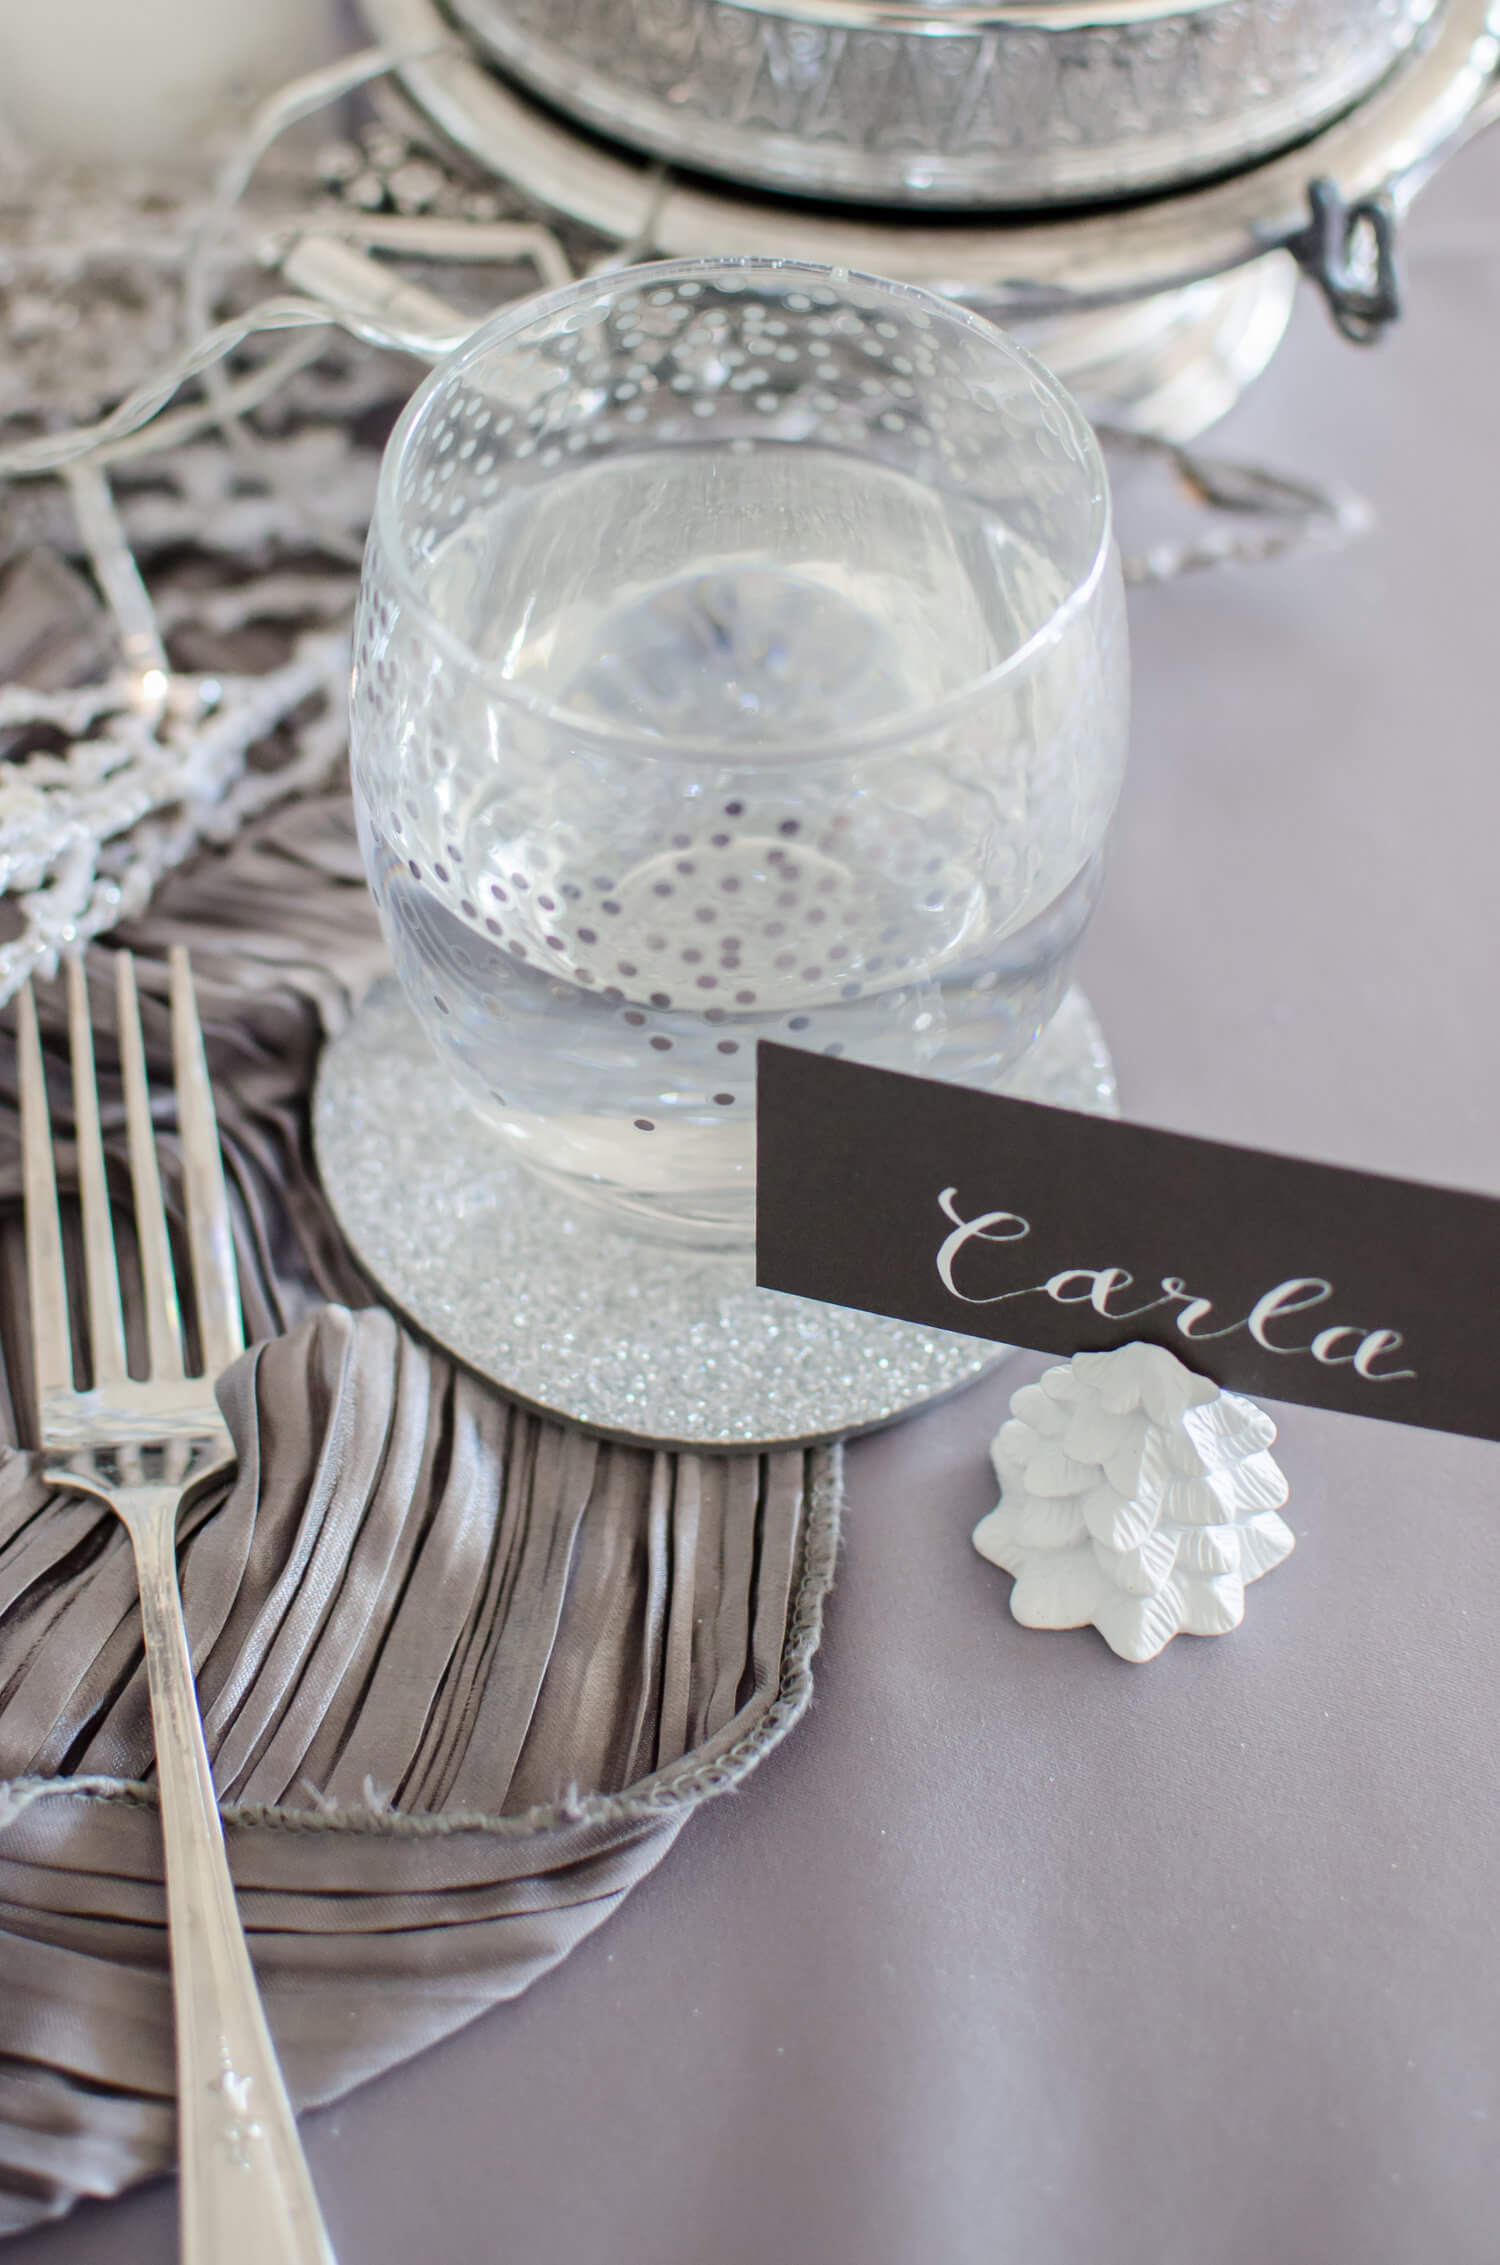 The perfect winter wonderland tablesetting details - silver glitter coasters, confetti glasses, and shimmery grey rouched linens. See more ideas from this Winter Wonderland themed Bridal Shower Inspiration created by Mint Event Design www.minteventdesign.com #winterweddingideas #weddingwedding #bridalshowerideas #winterwonderland